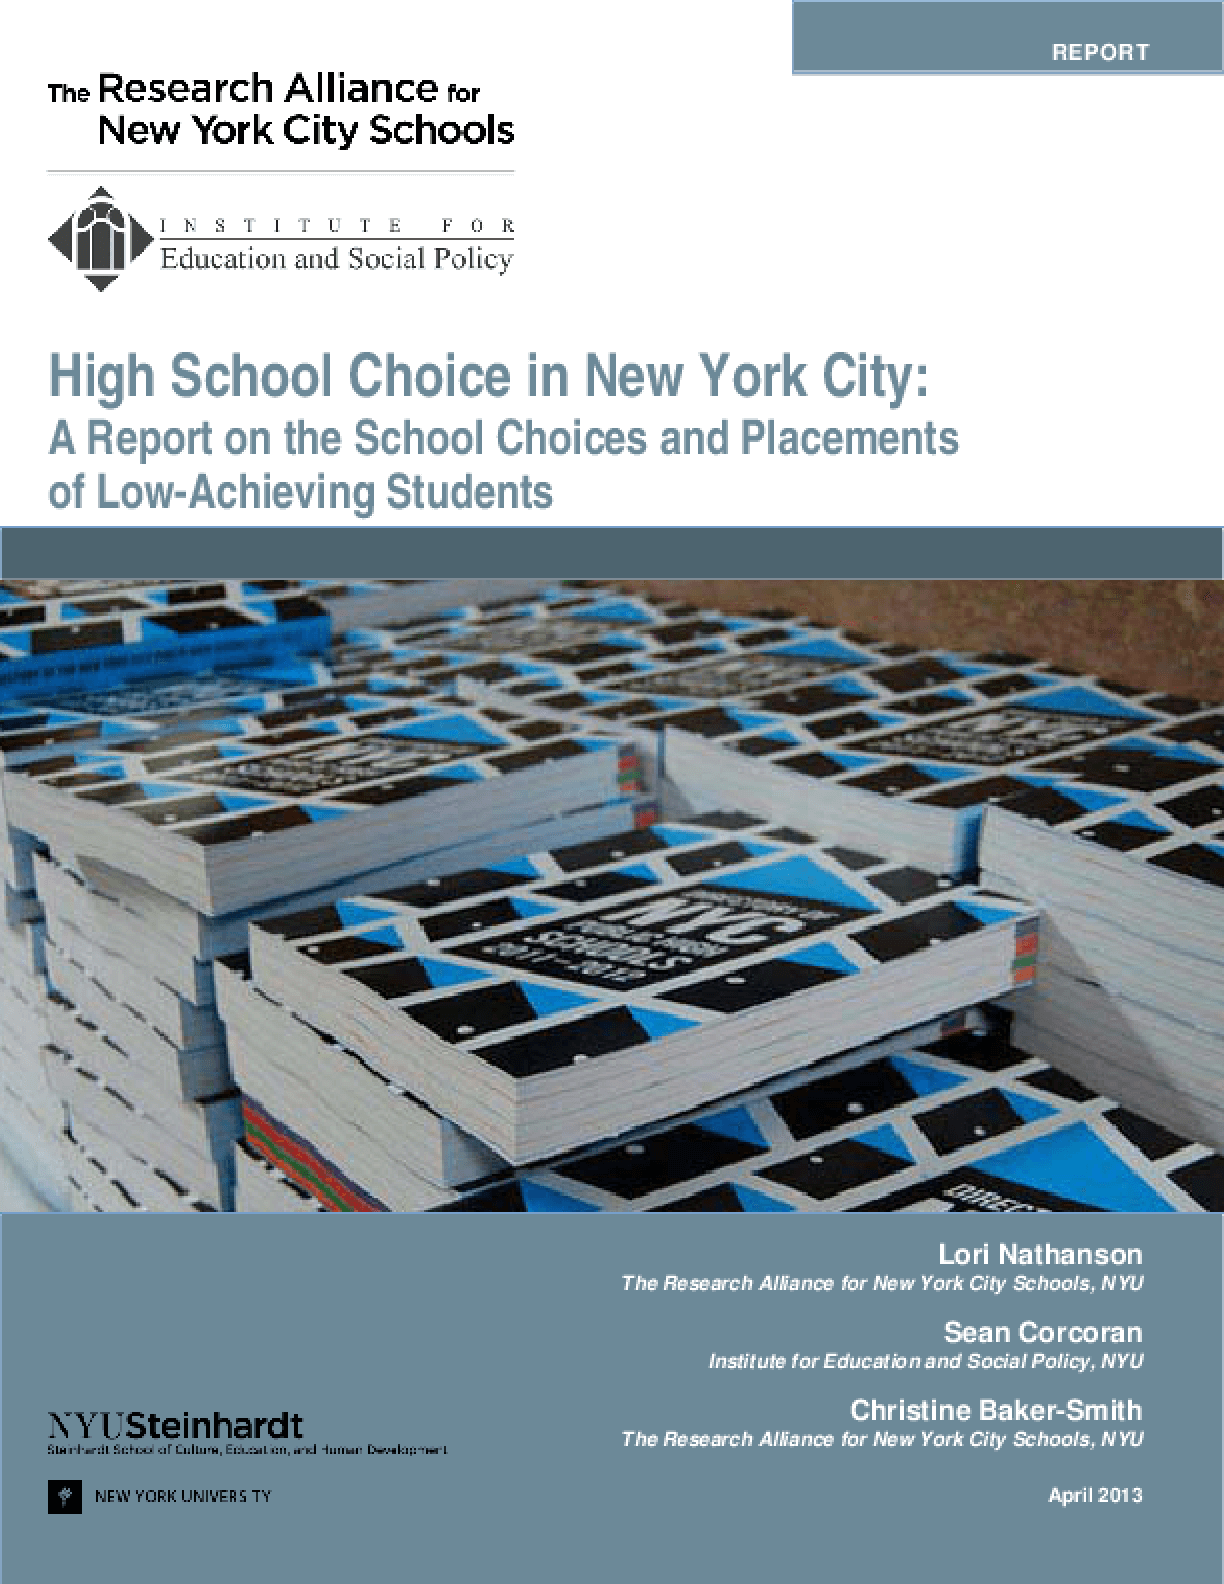 High School Choice in New York City: A Report on the School Choices and Placements of Low-Achieving Students